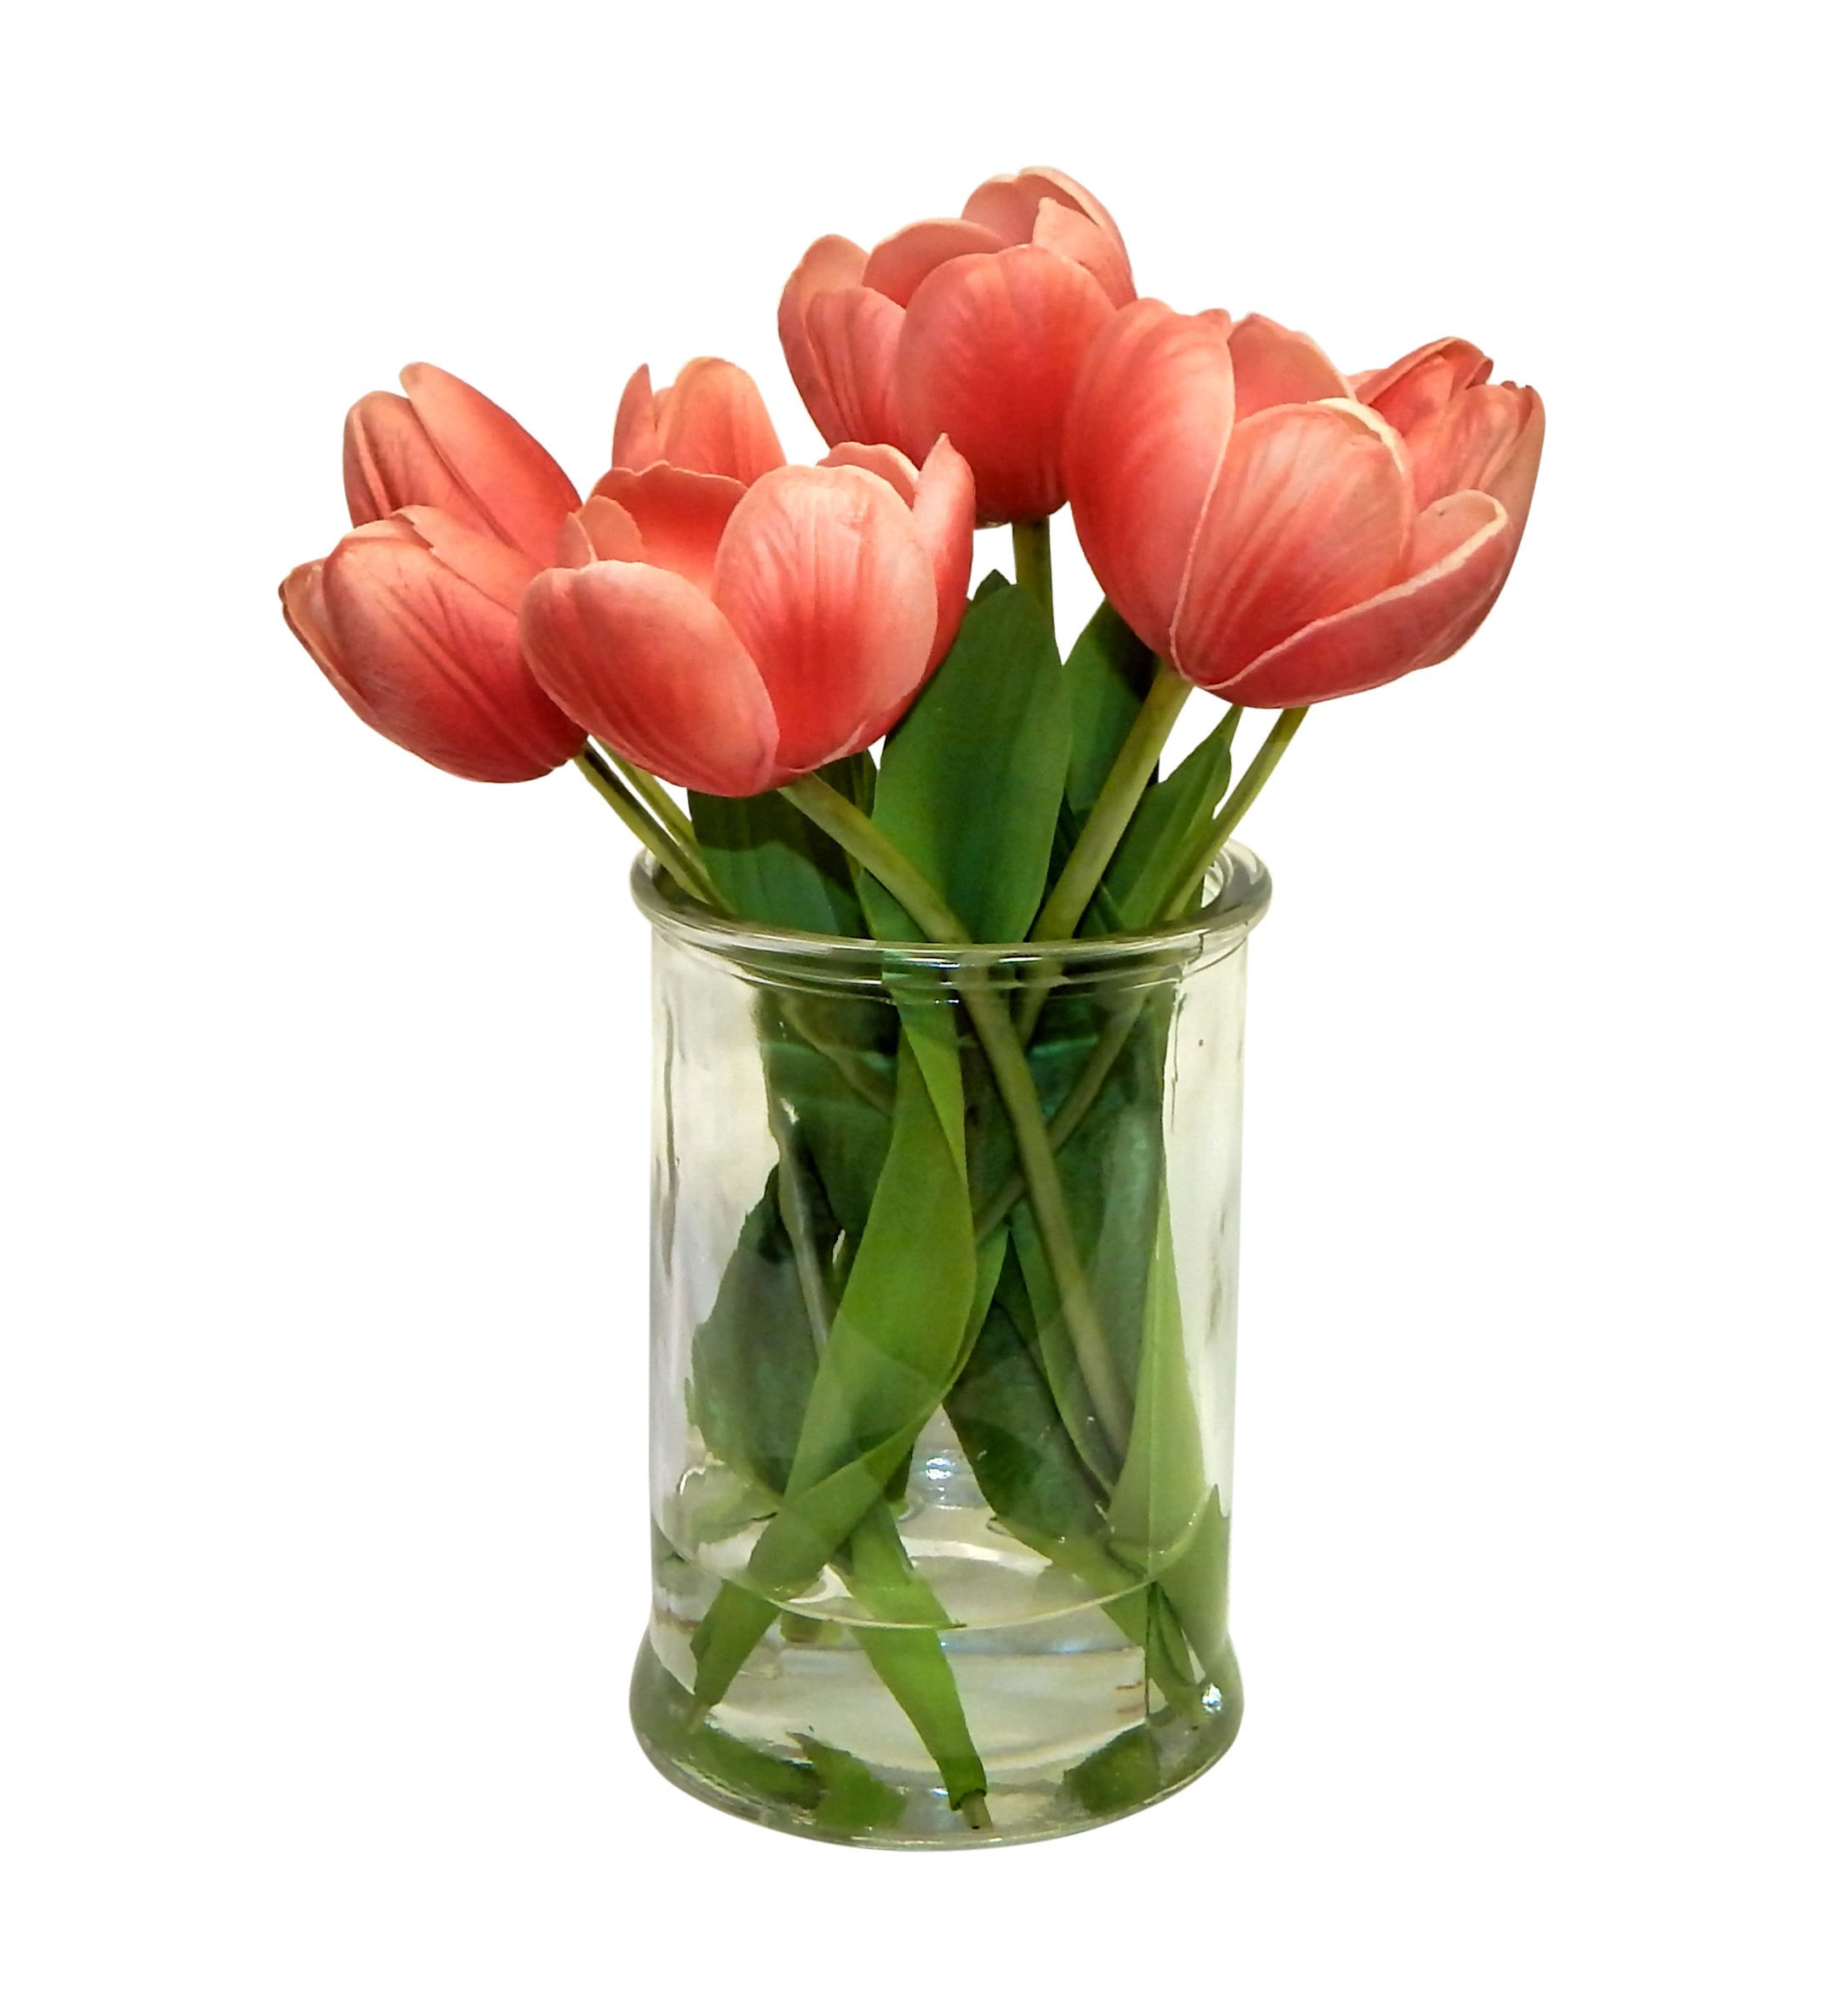 Coral Real Touch Tulip Arrangement In Glass Vase Artificial Etsy